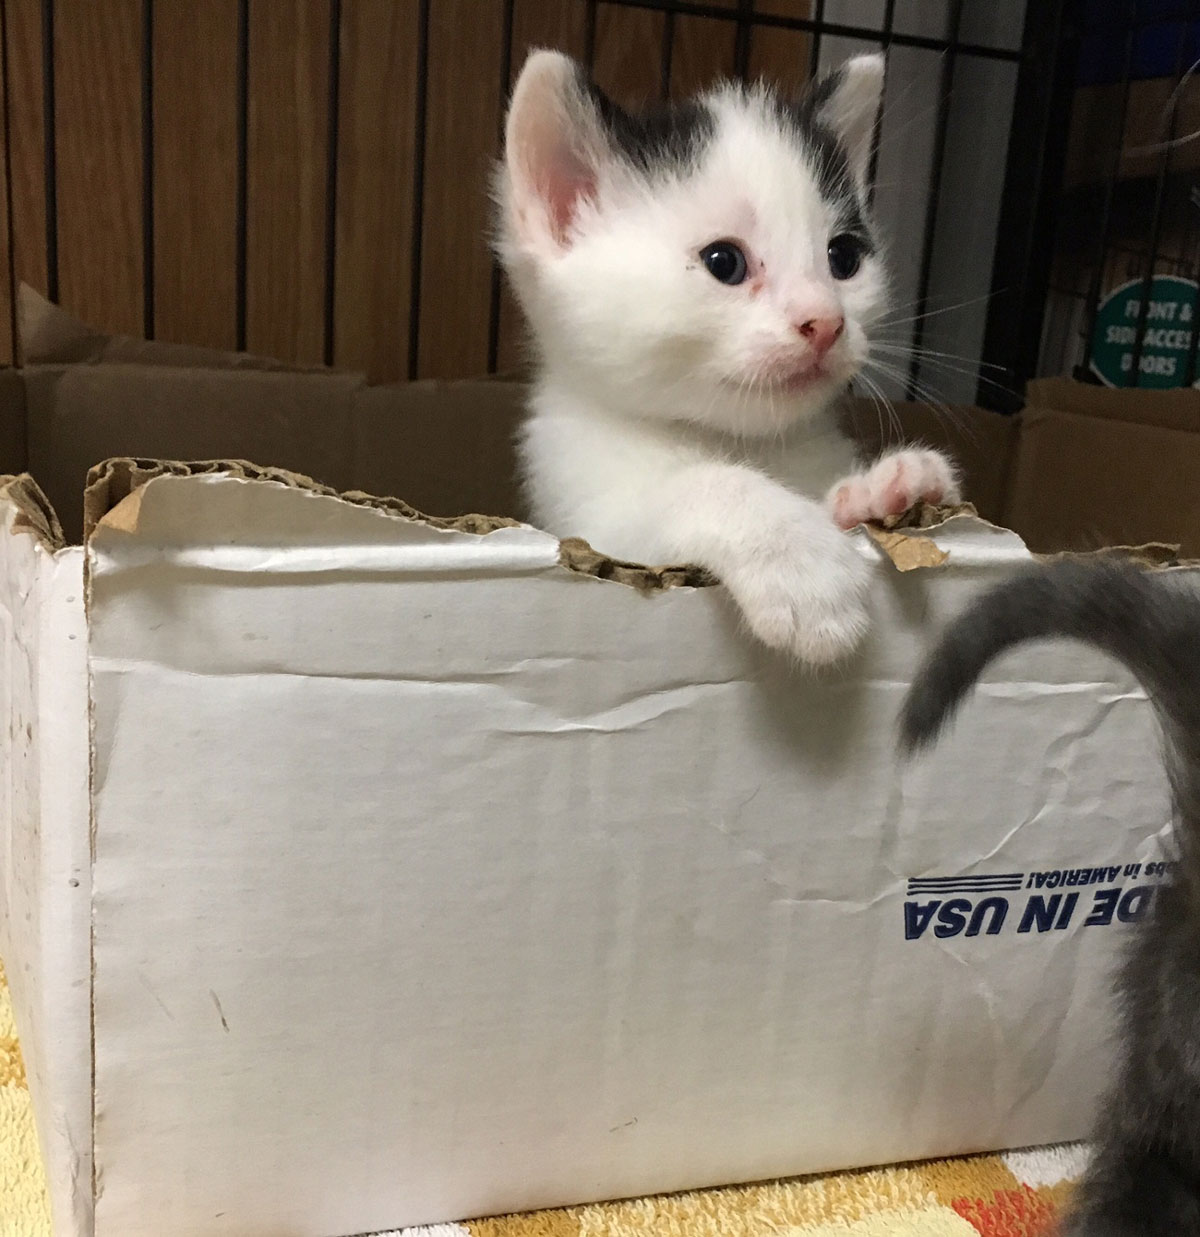 One of five kittens that will be available for adoption in about 4 weeks. (WTOP/Kate Ryan)